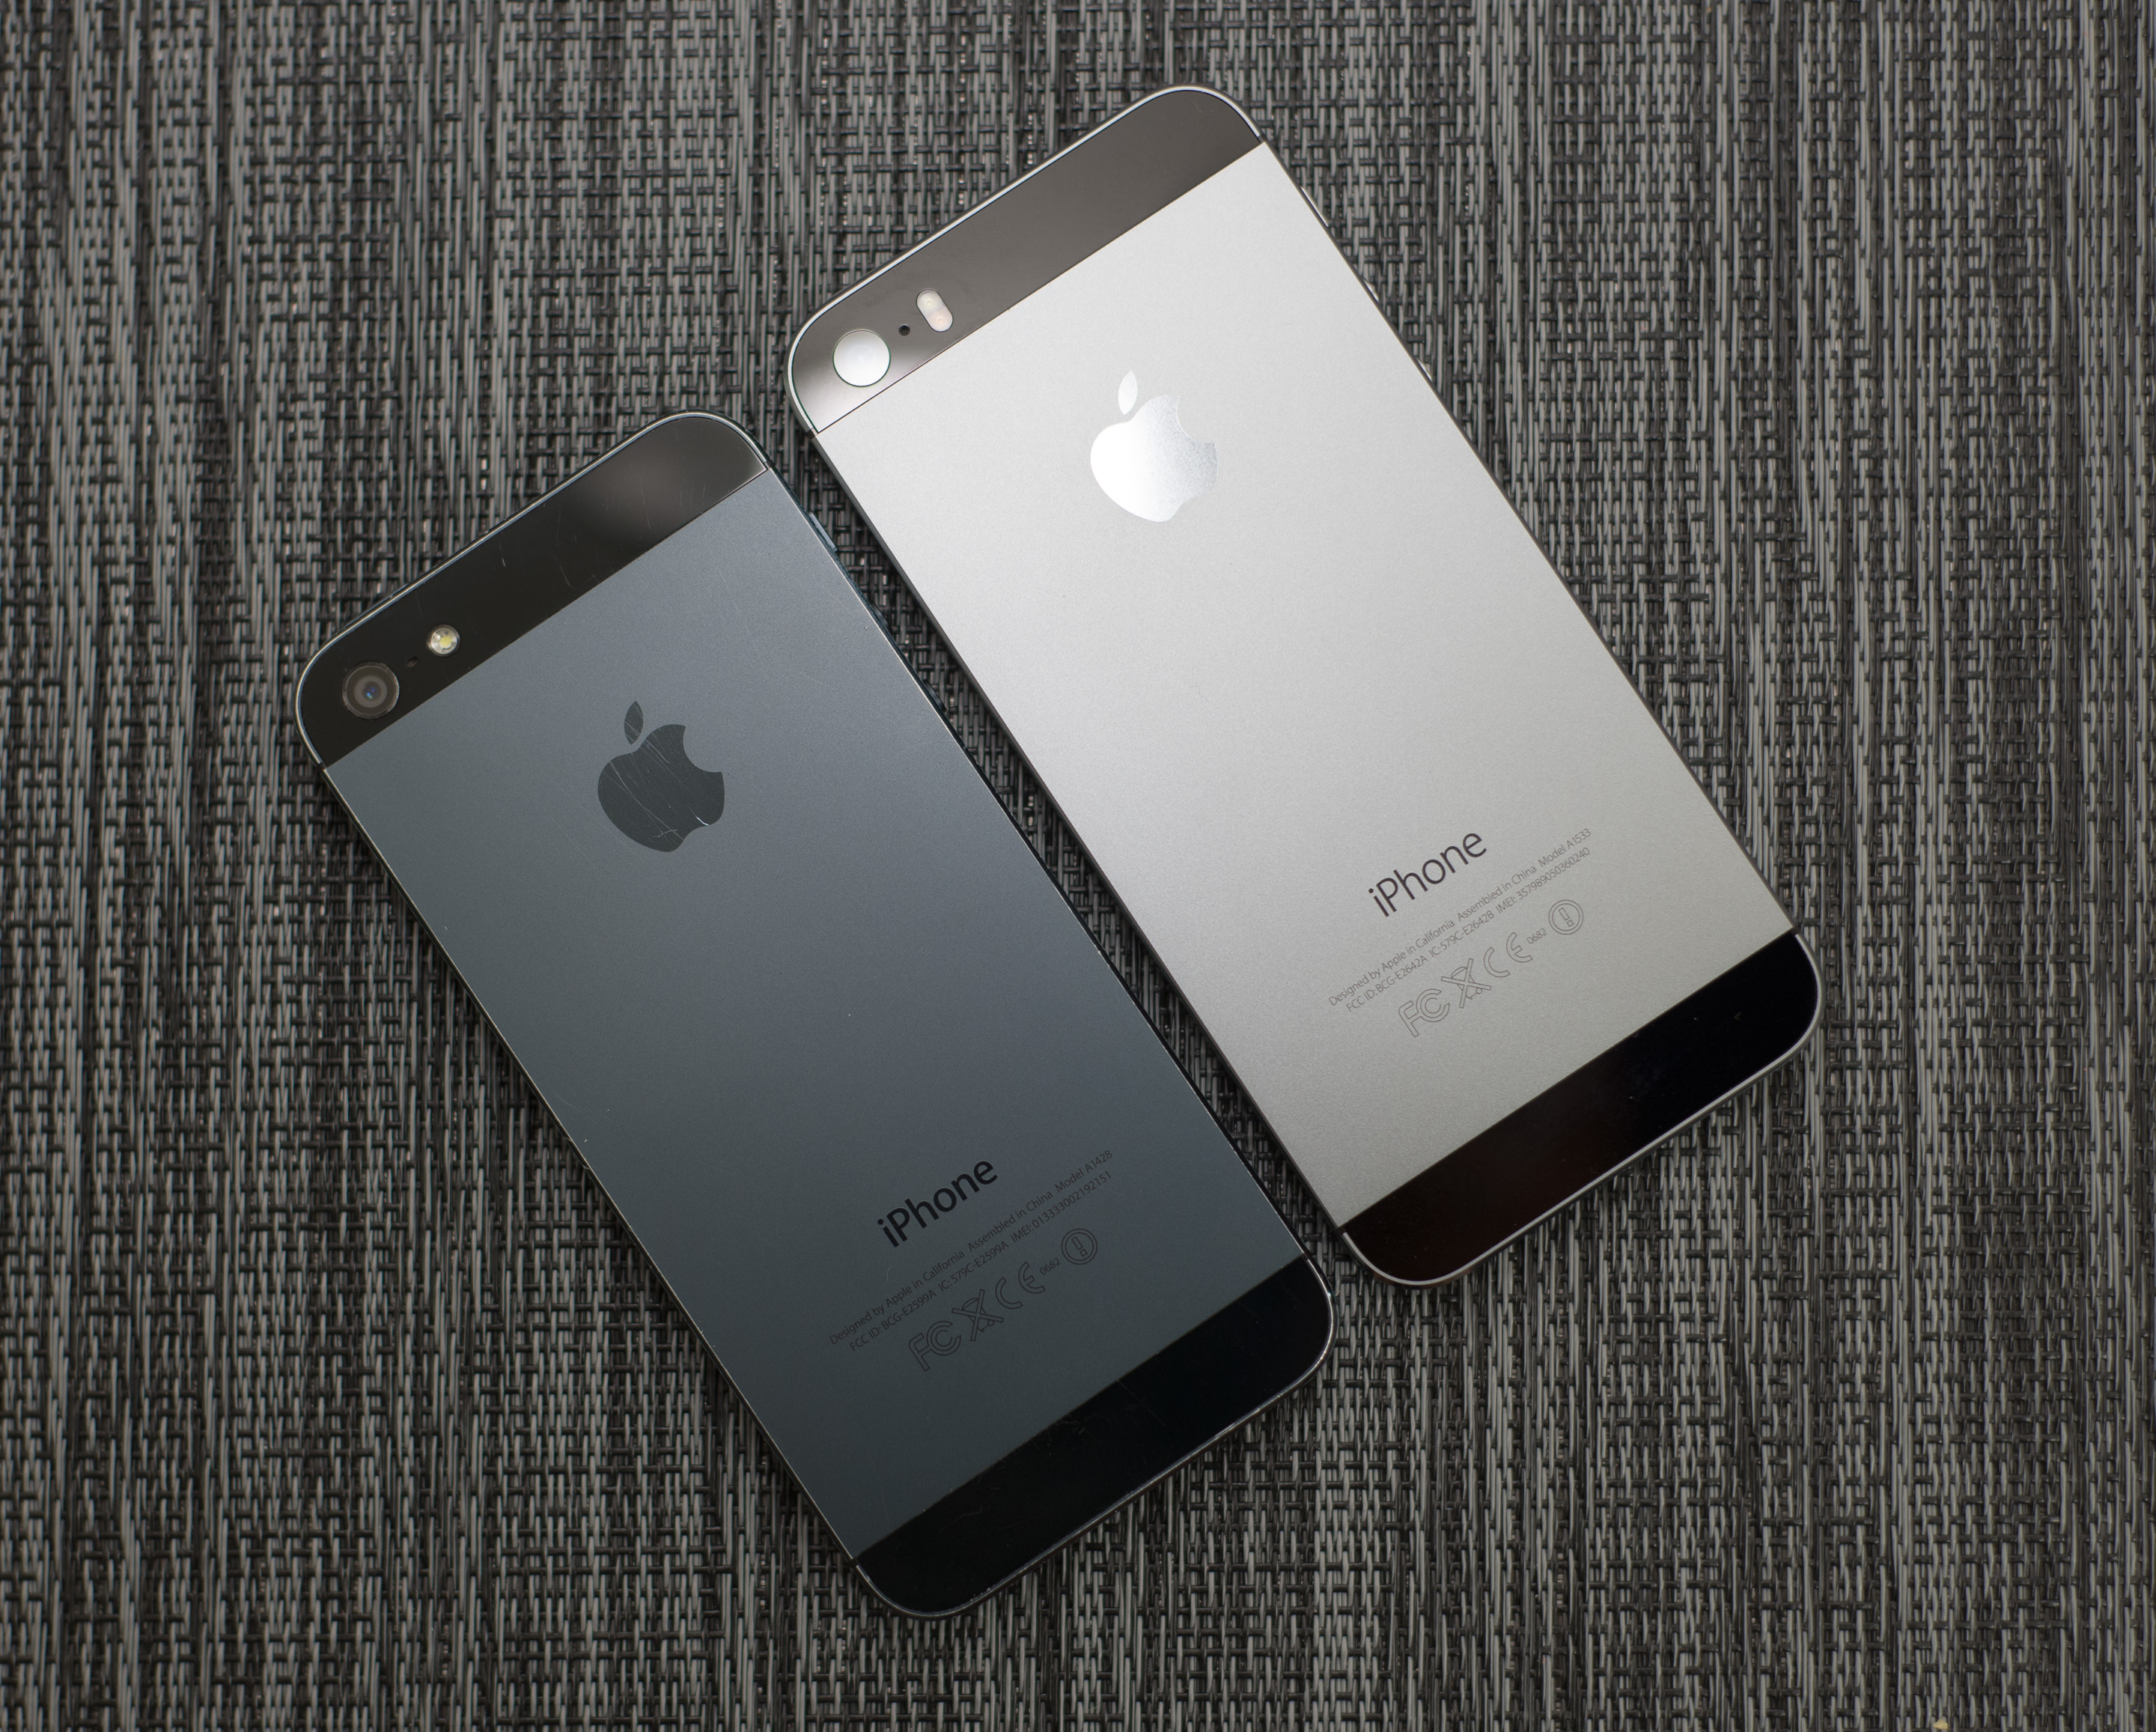 The iPhone 5s Review